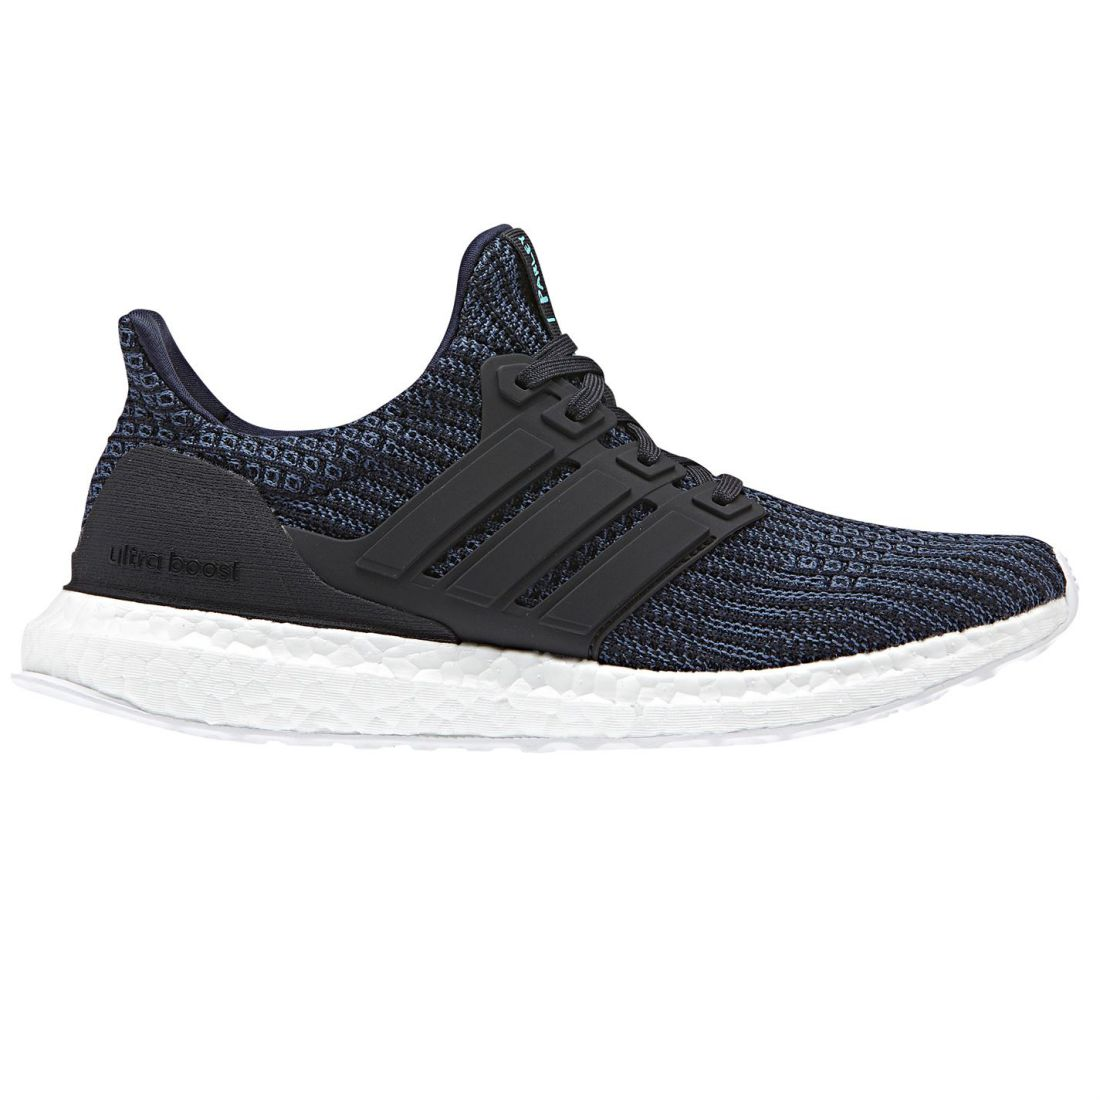 Adidas UltraBoost Running  shoes Ladies Road Knit Stretch  factory outlets